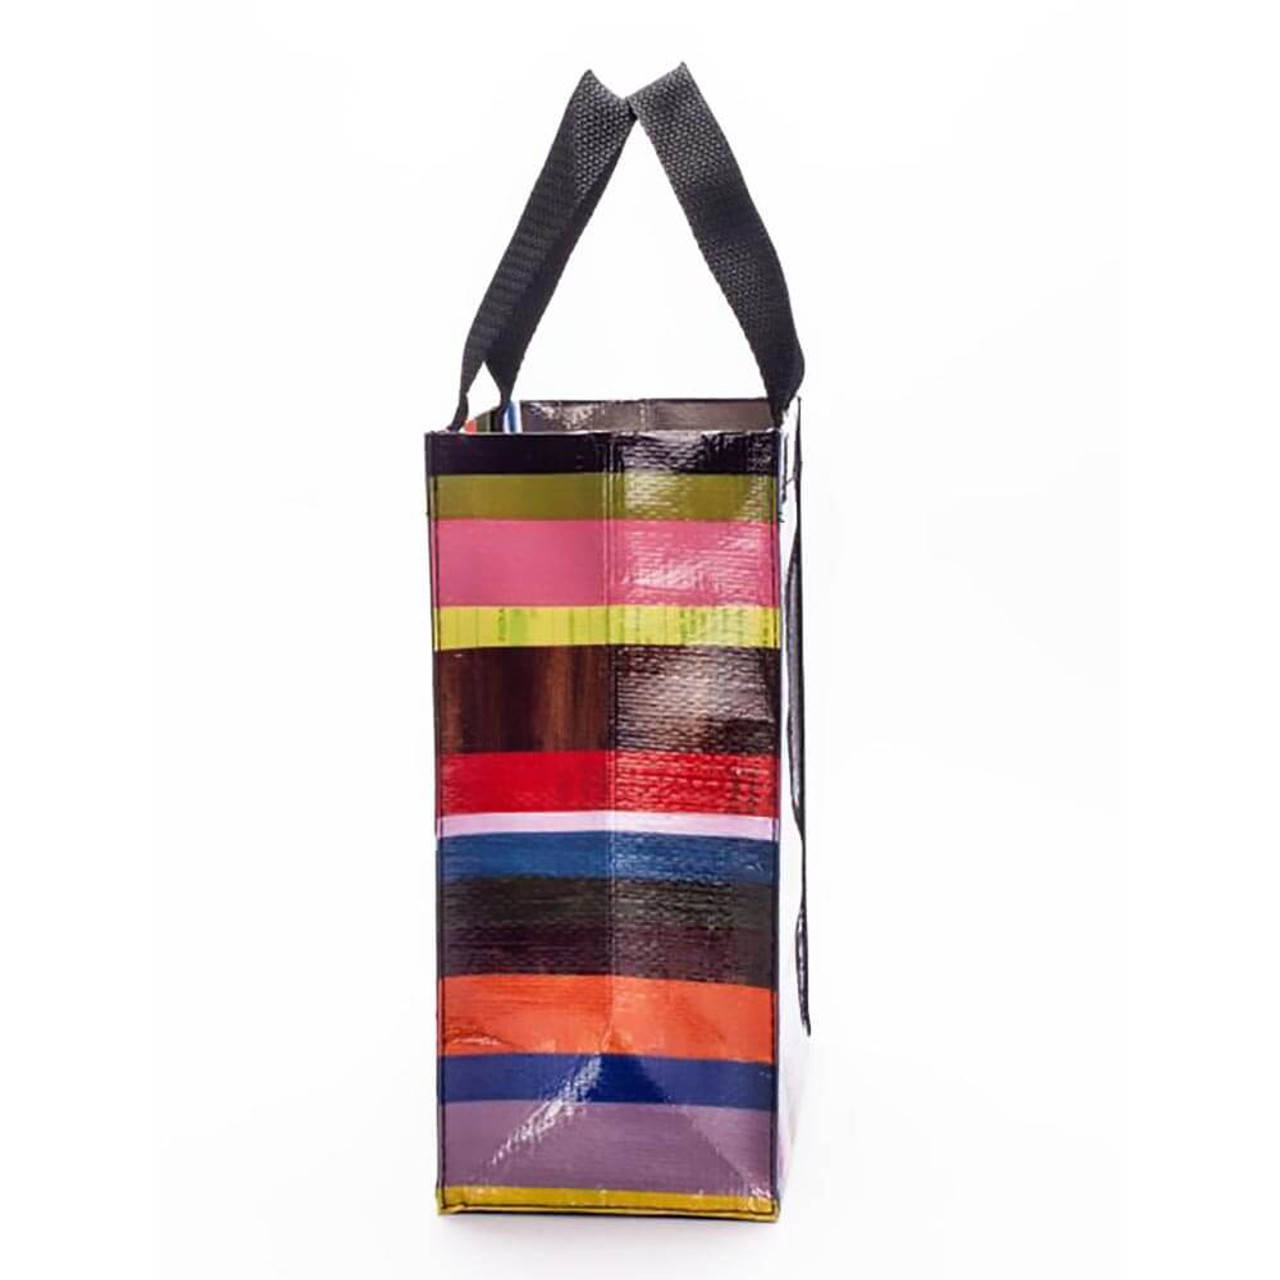 Doggy Bag Handy Lunch Tote